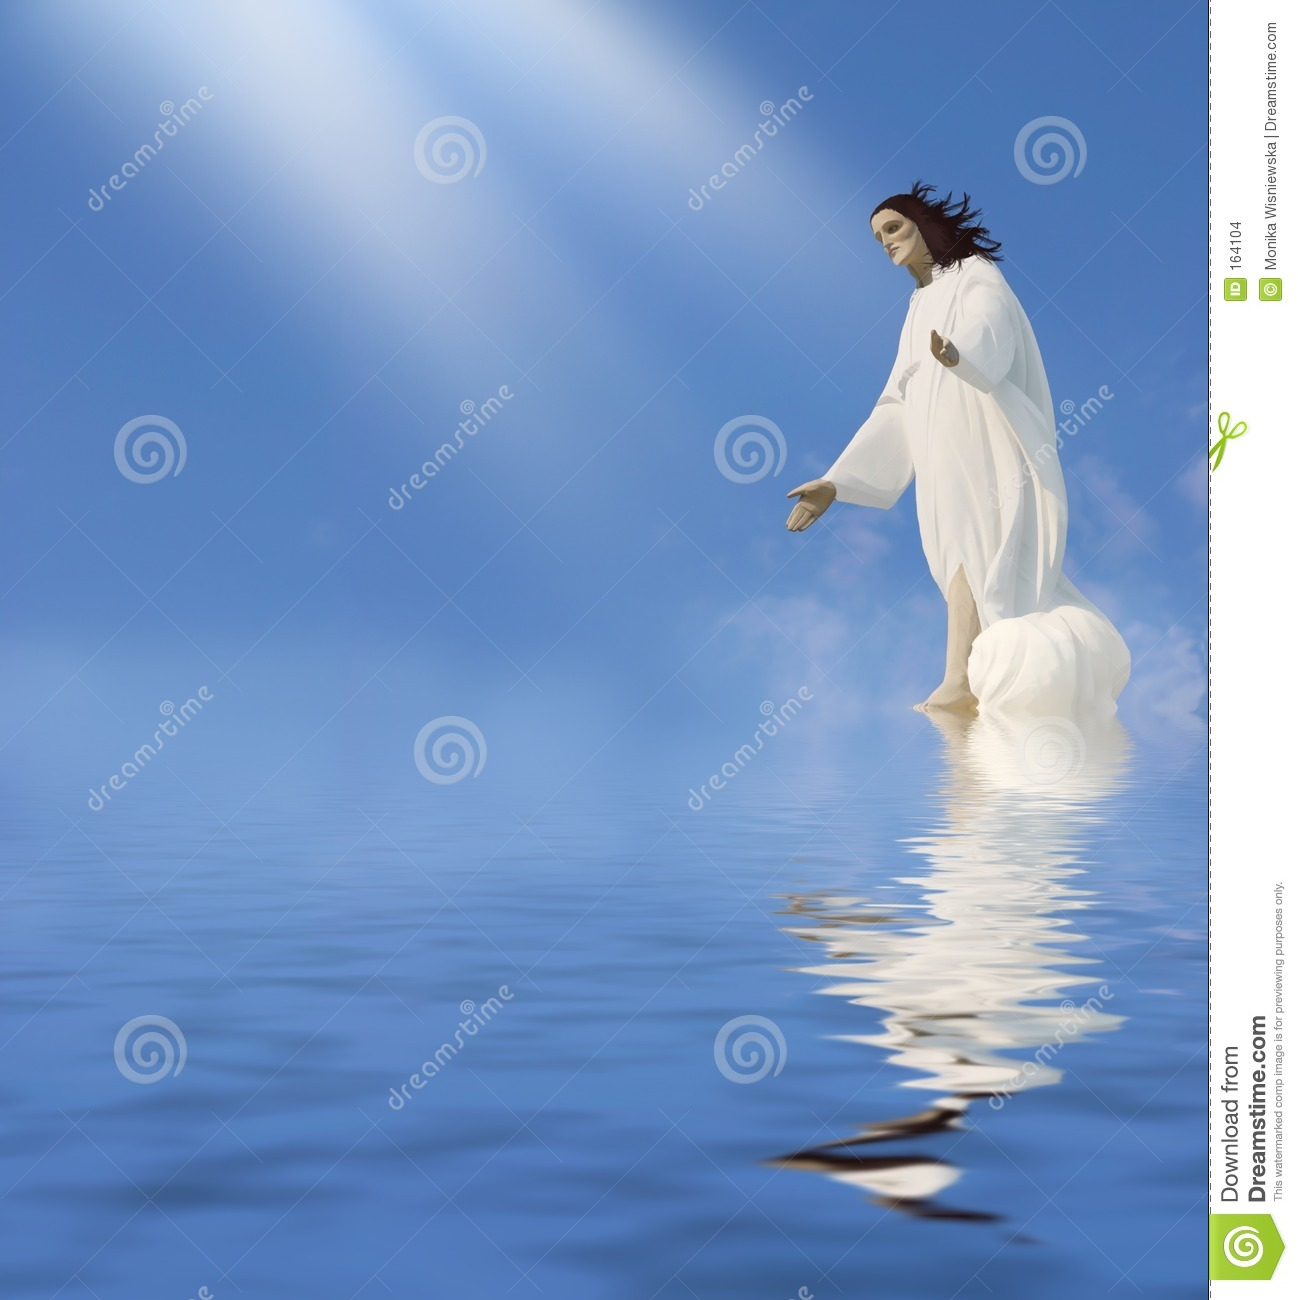 Miracle clipart jesus does #10